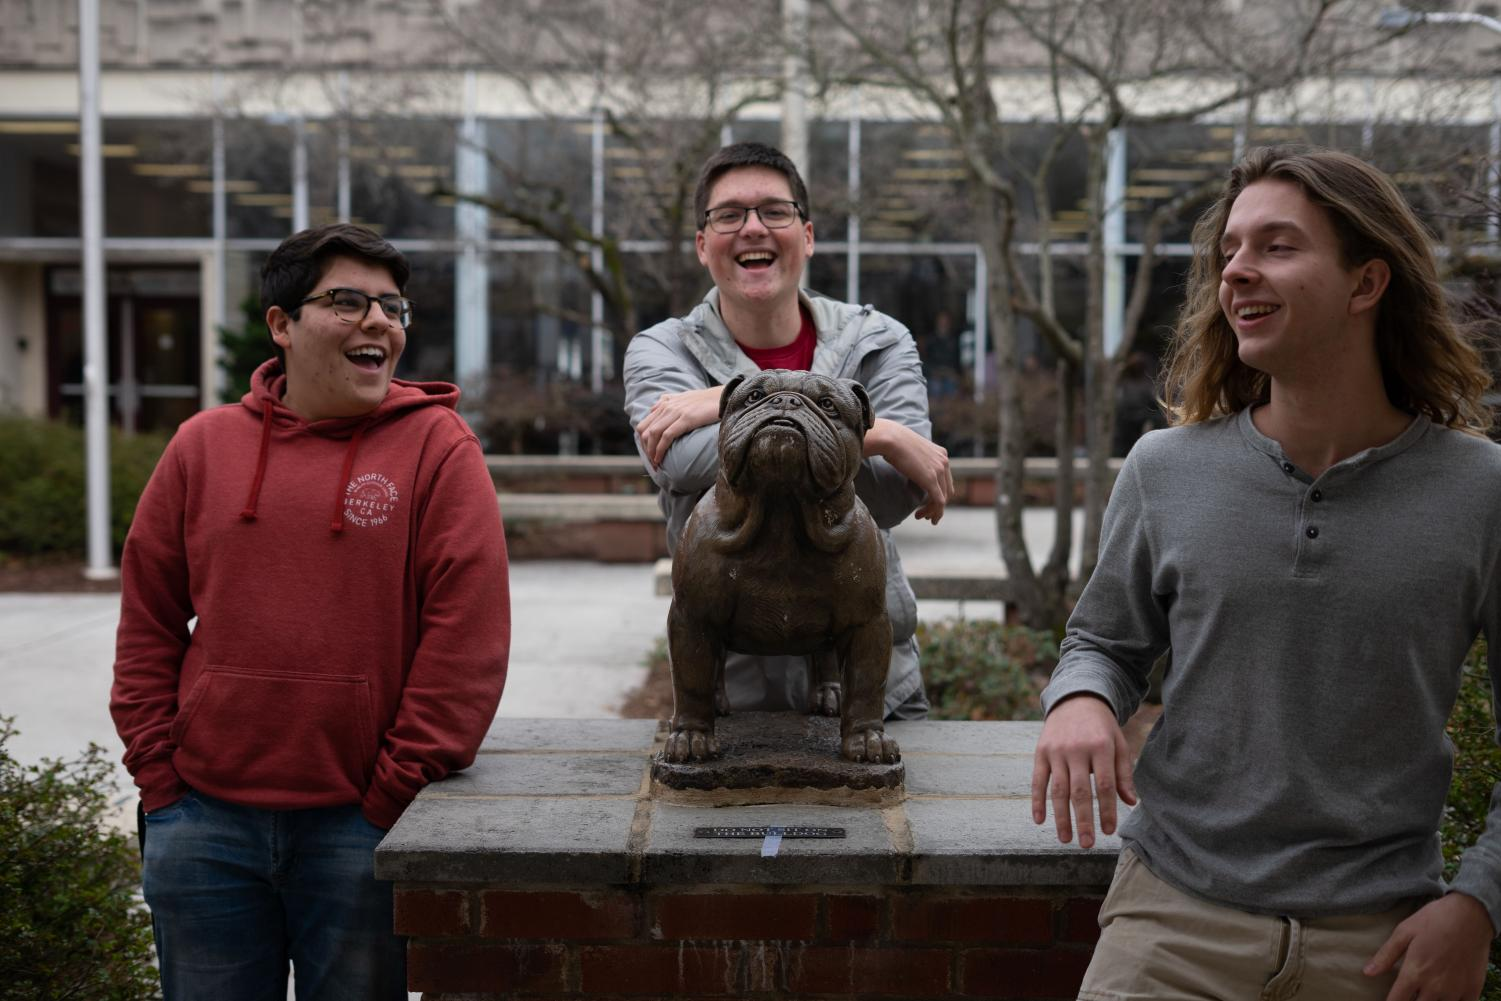 Dane Morgan (right) is Bearden's valedictorian for the Class of 2019. Hayden Harb and Parker Kent (left and middle) are co-salutatorians.